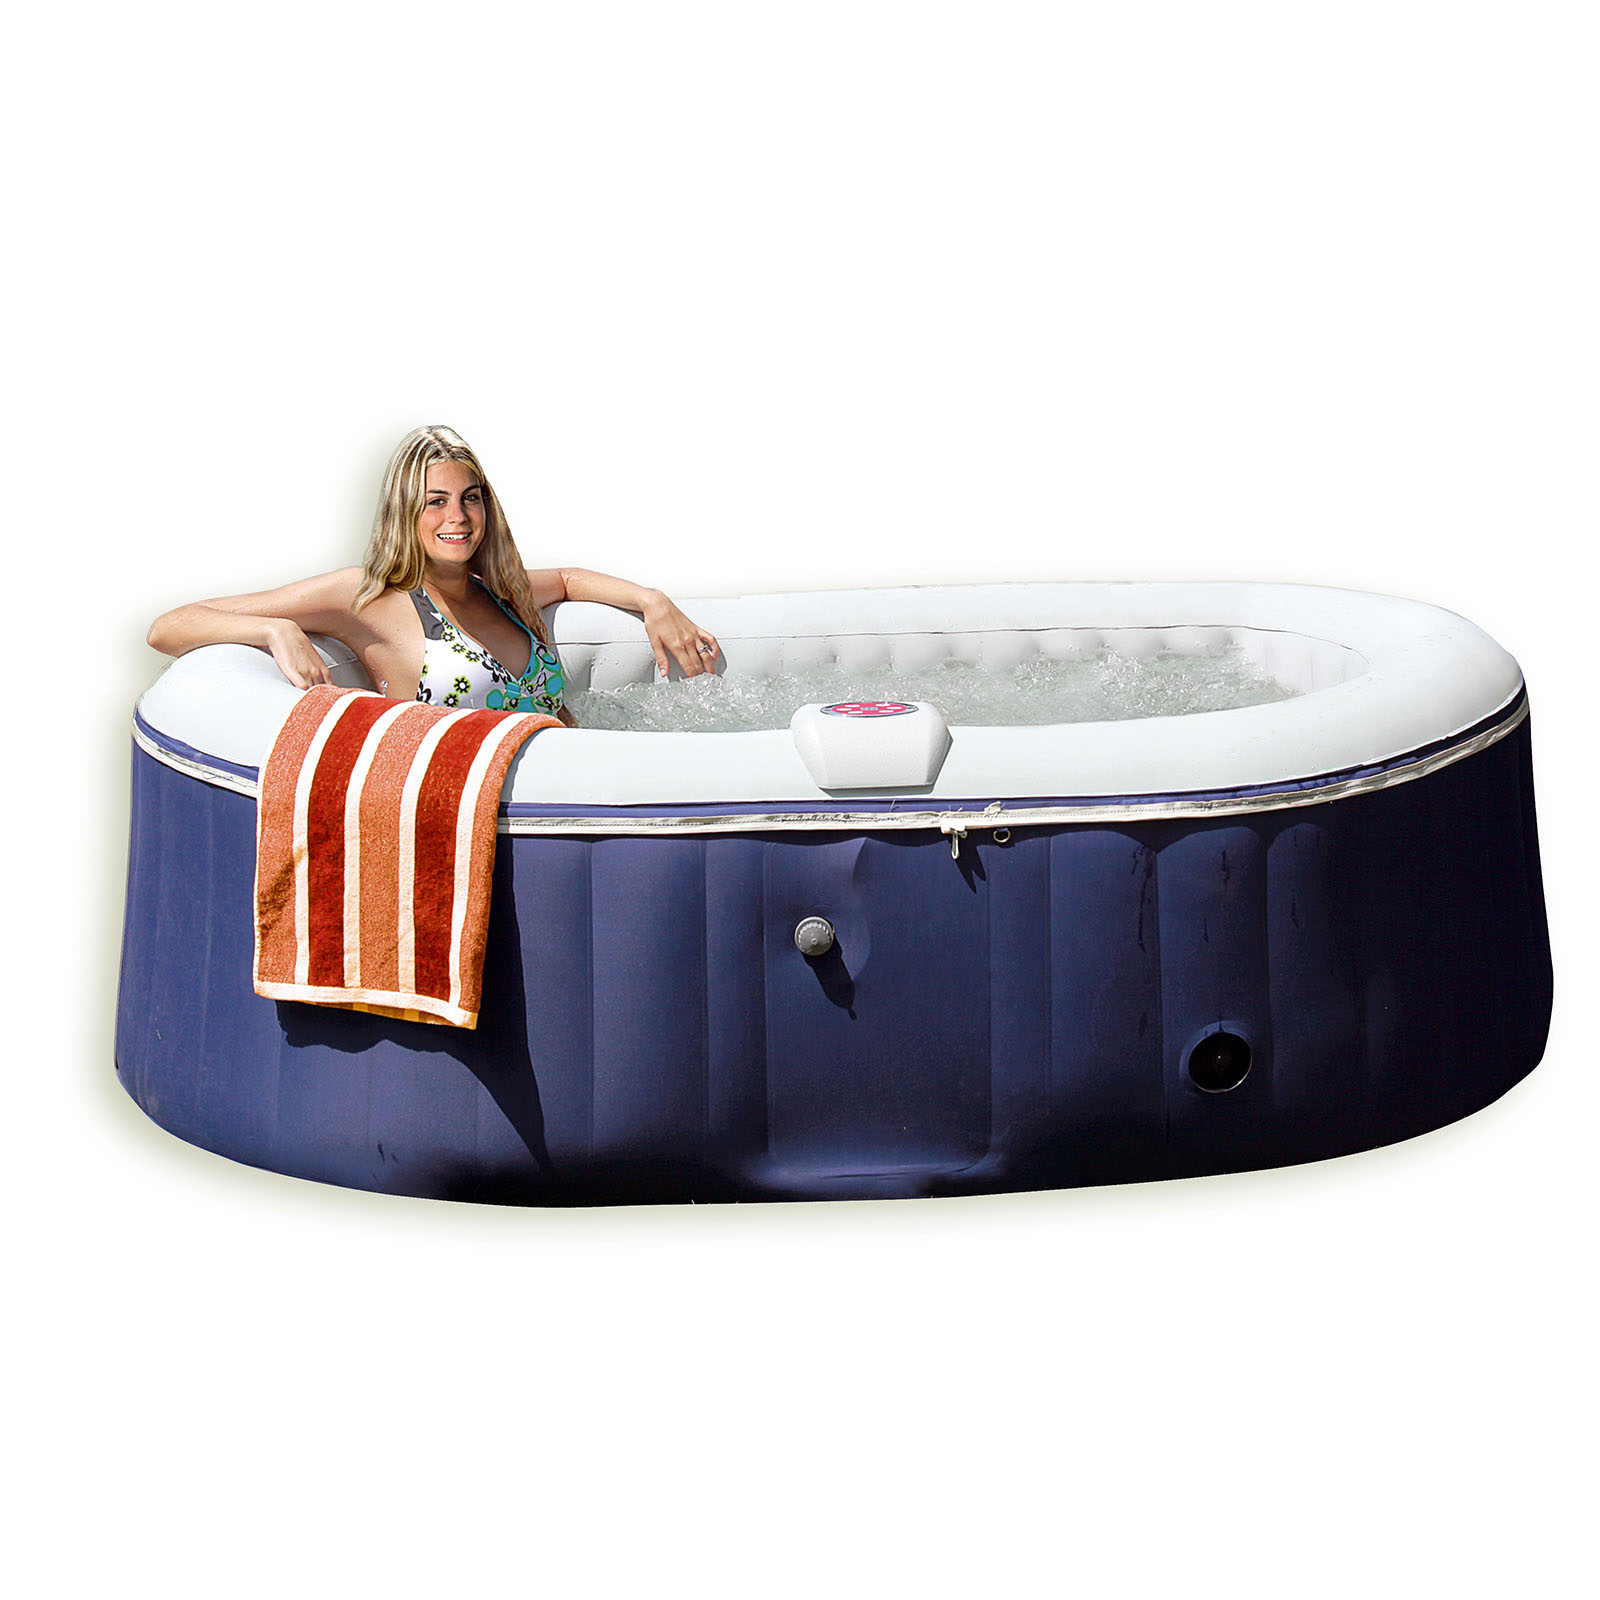 jacuzzi gonflable pour 4 personnes avec chauffage jacuzzi outdoor indoor ebay. Black Bedroom Furniture Sets. Home Design Ideas